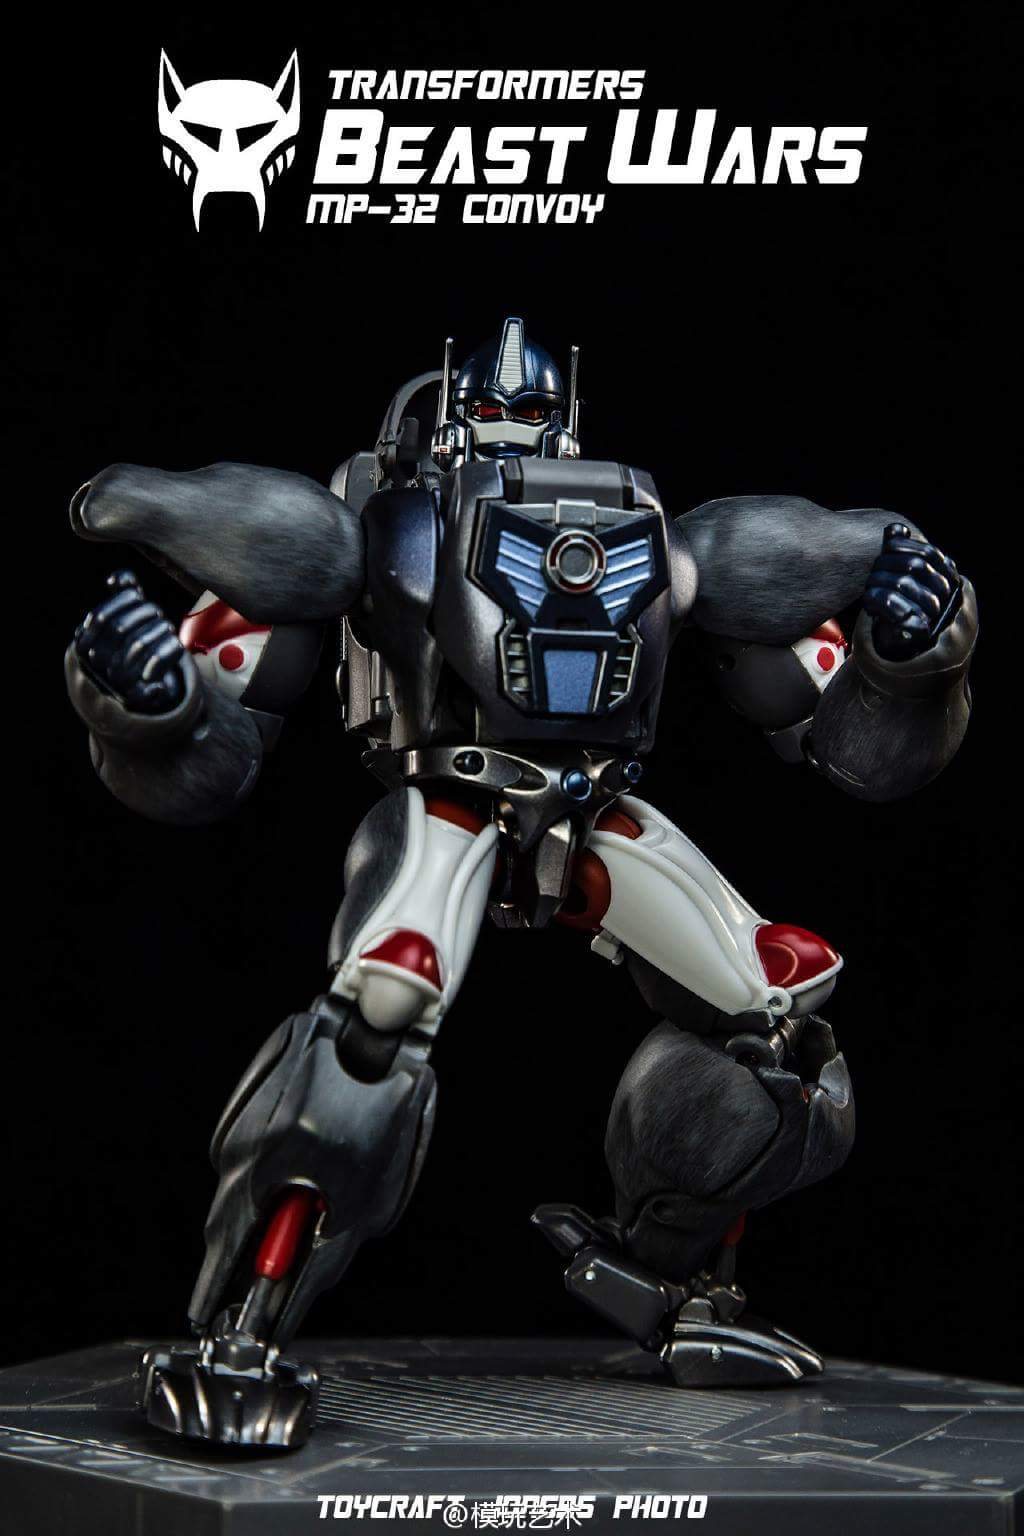 [Masterpiece] MP-32, MP-38 Optimus Primal et MP-38+ Burning Convoy (Beast Wars) - Page 3 Avp1Lhho